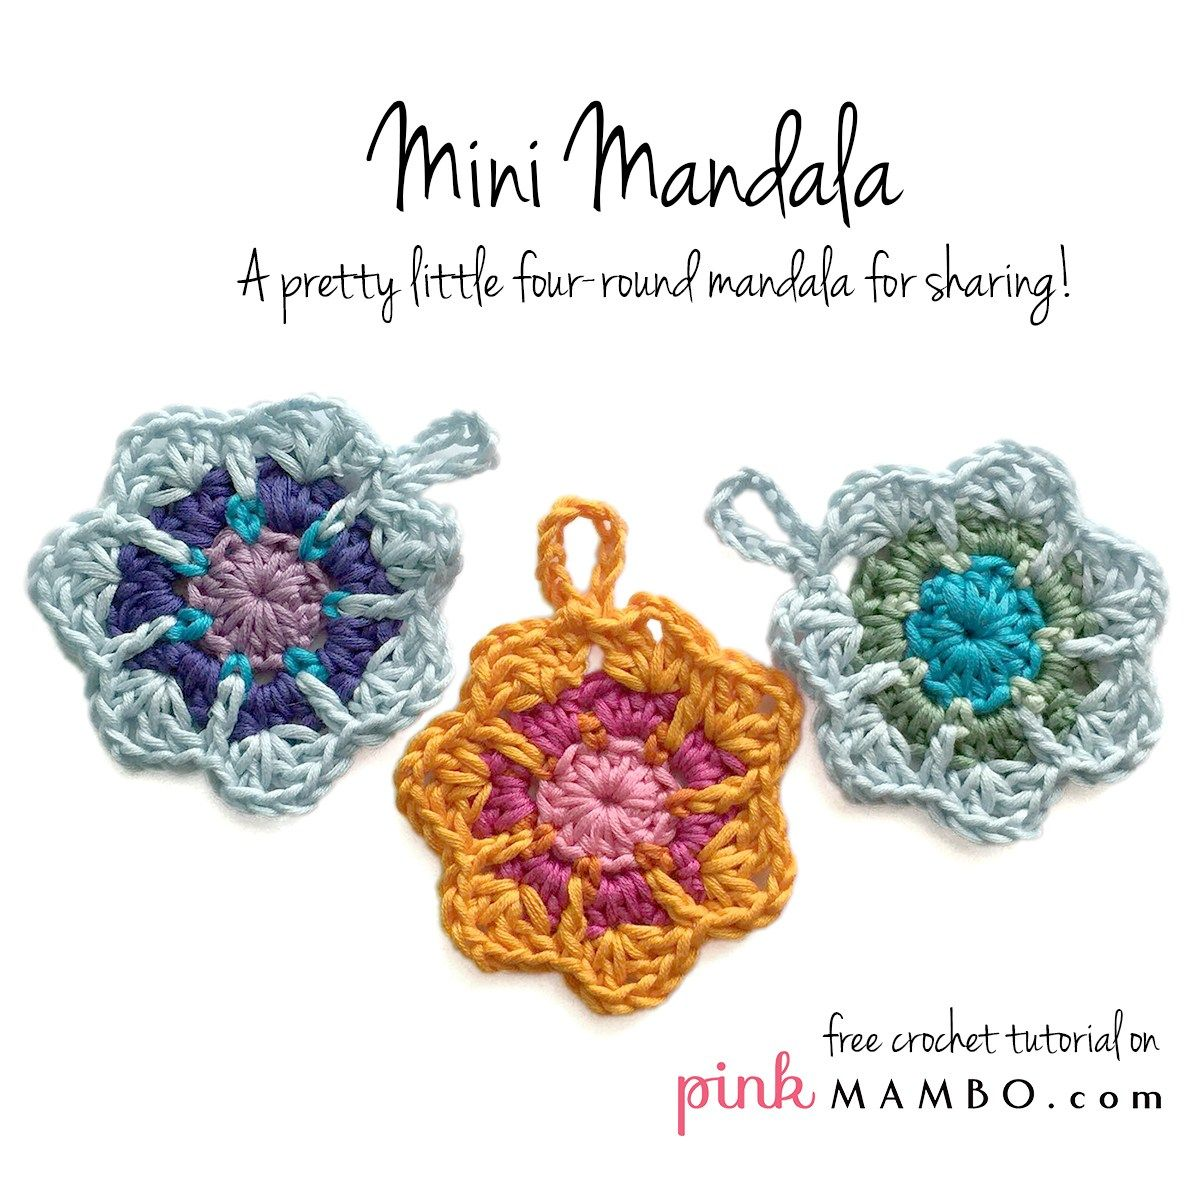 Crochet Mini Mandala Free Pattern Mandalas For Marinke Granny Coaster Patterns Diagrams A Few Pretty Snowflakes New Special Submissions Now Being Accepted Project